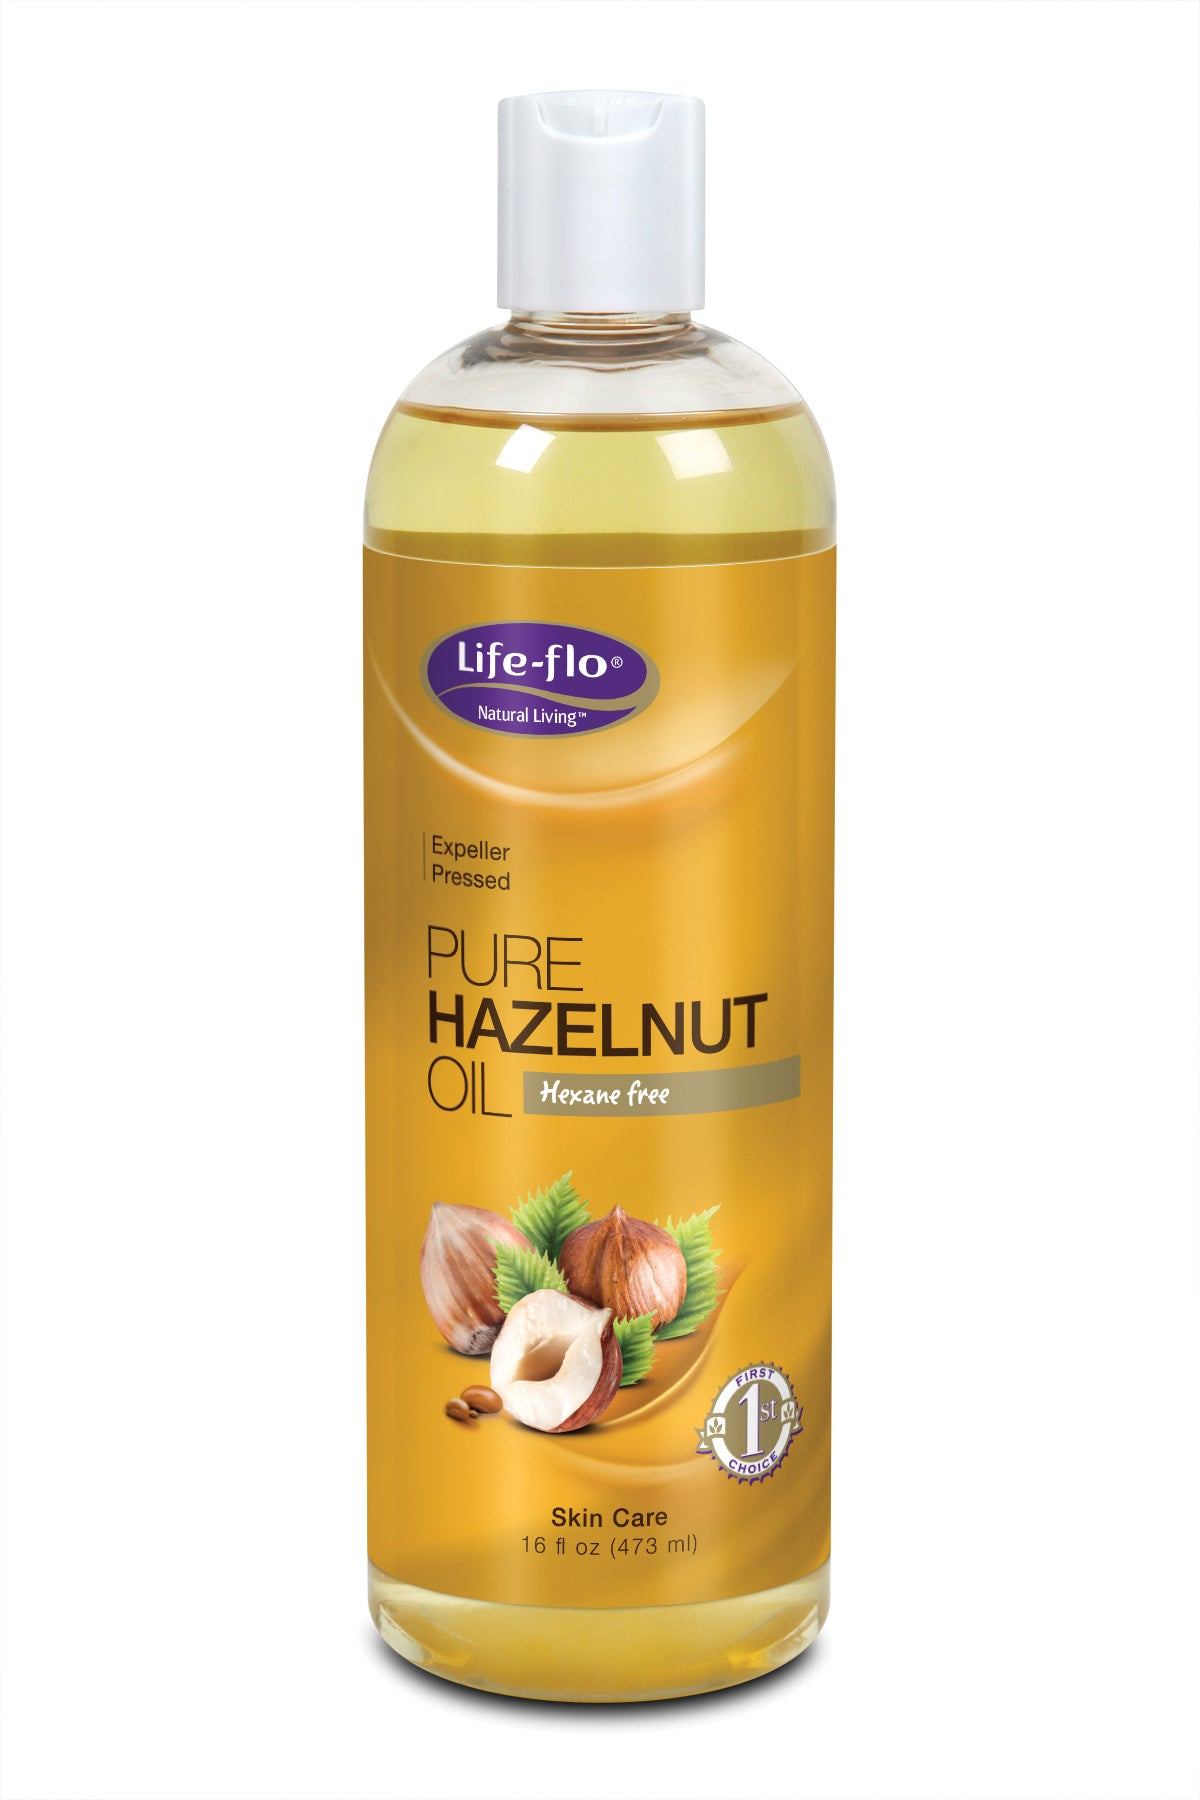 Pure Hazelnut Oil - 16 fl ounces